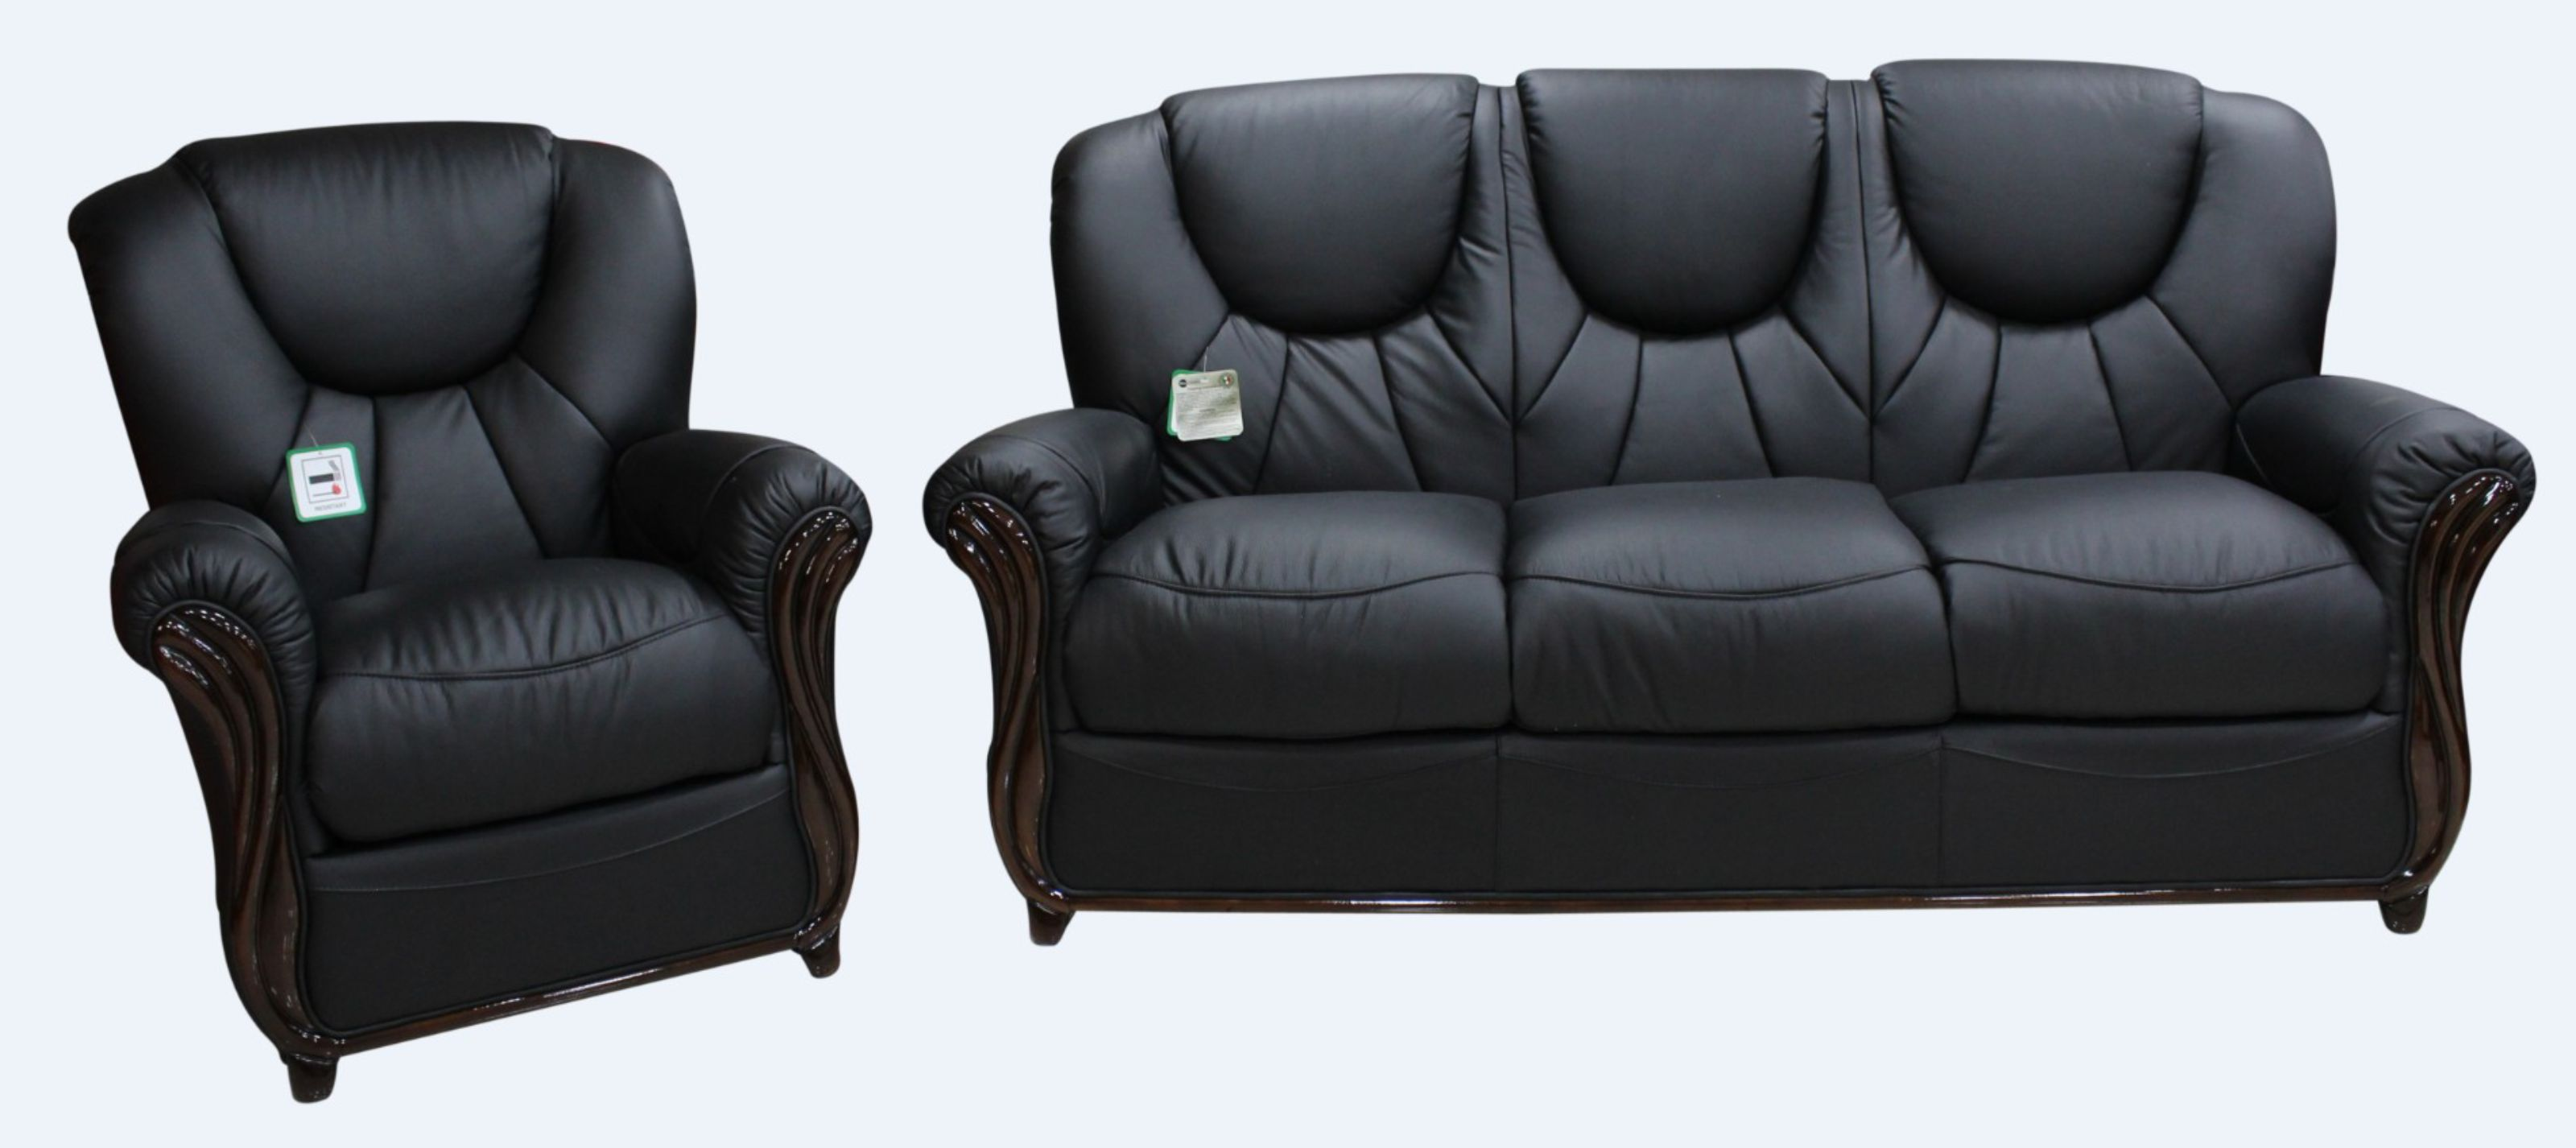 Lucca 3+1+1 Genuine Italian Black Leather Sofa Suite Offer